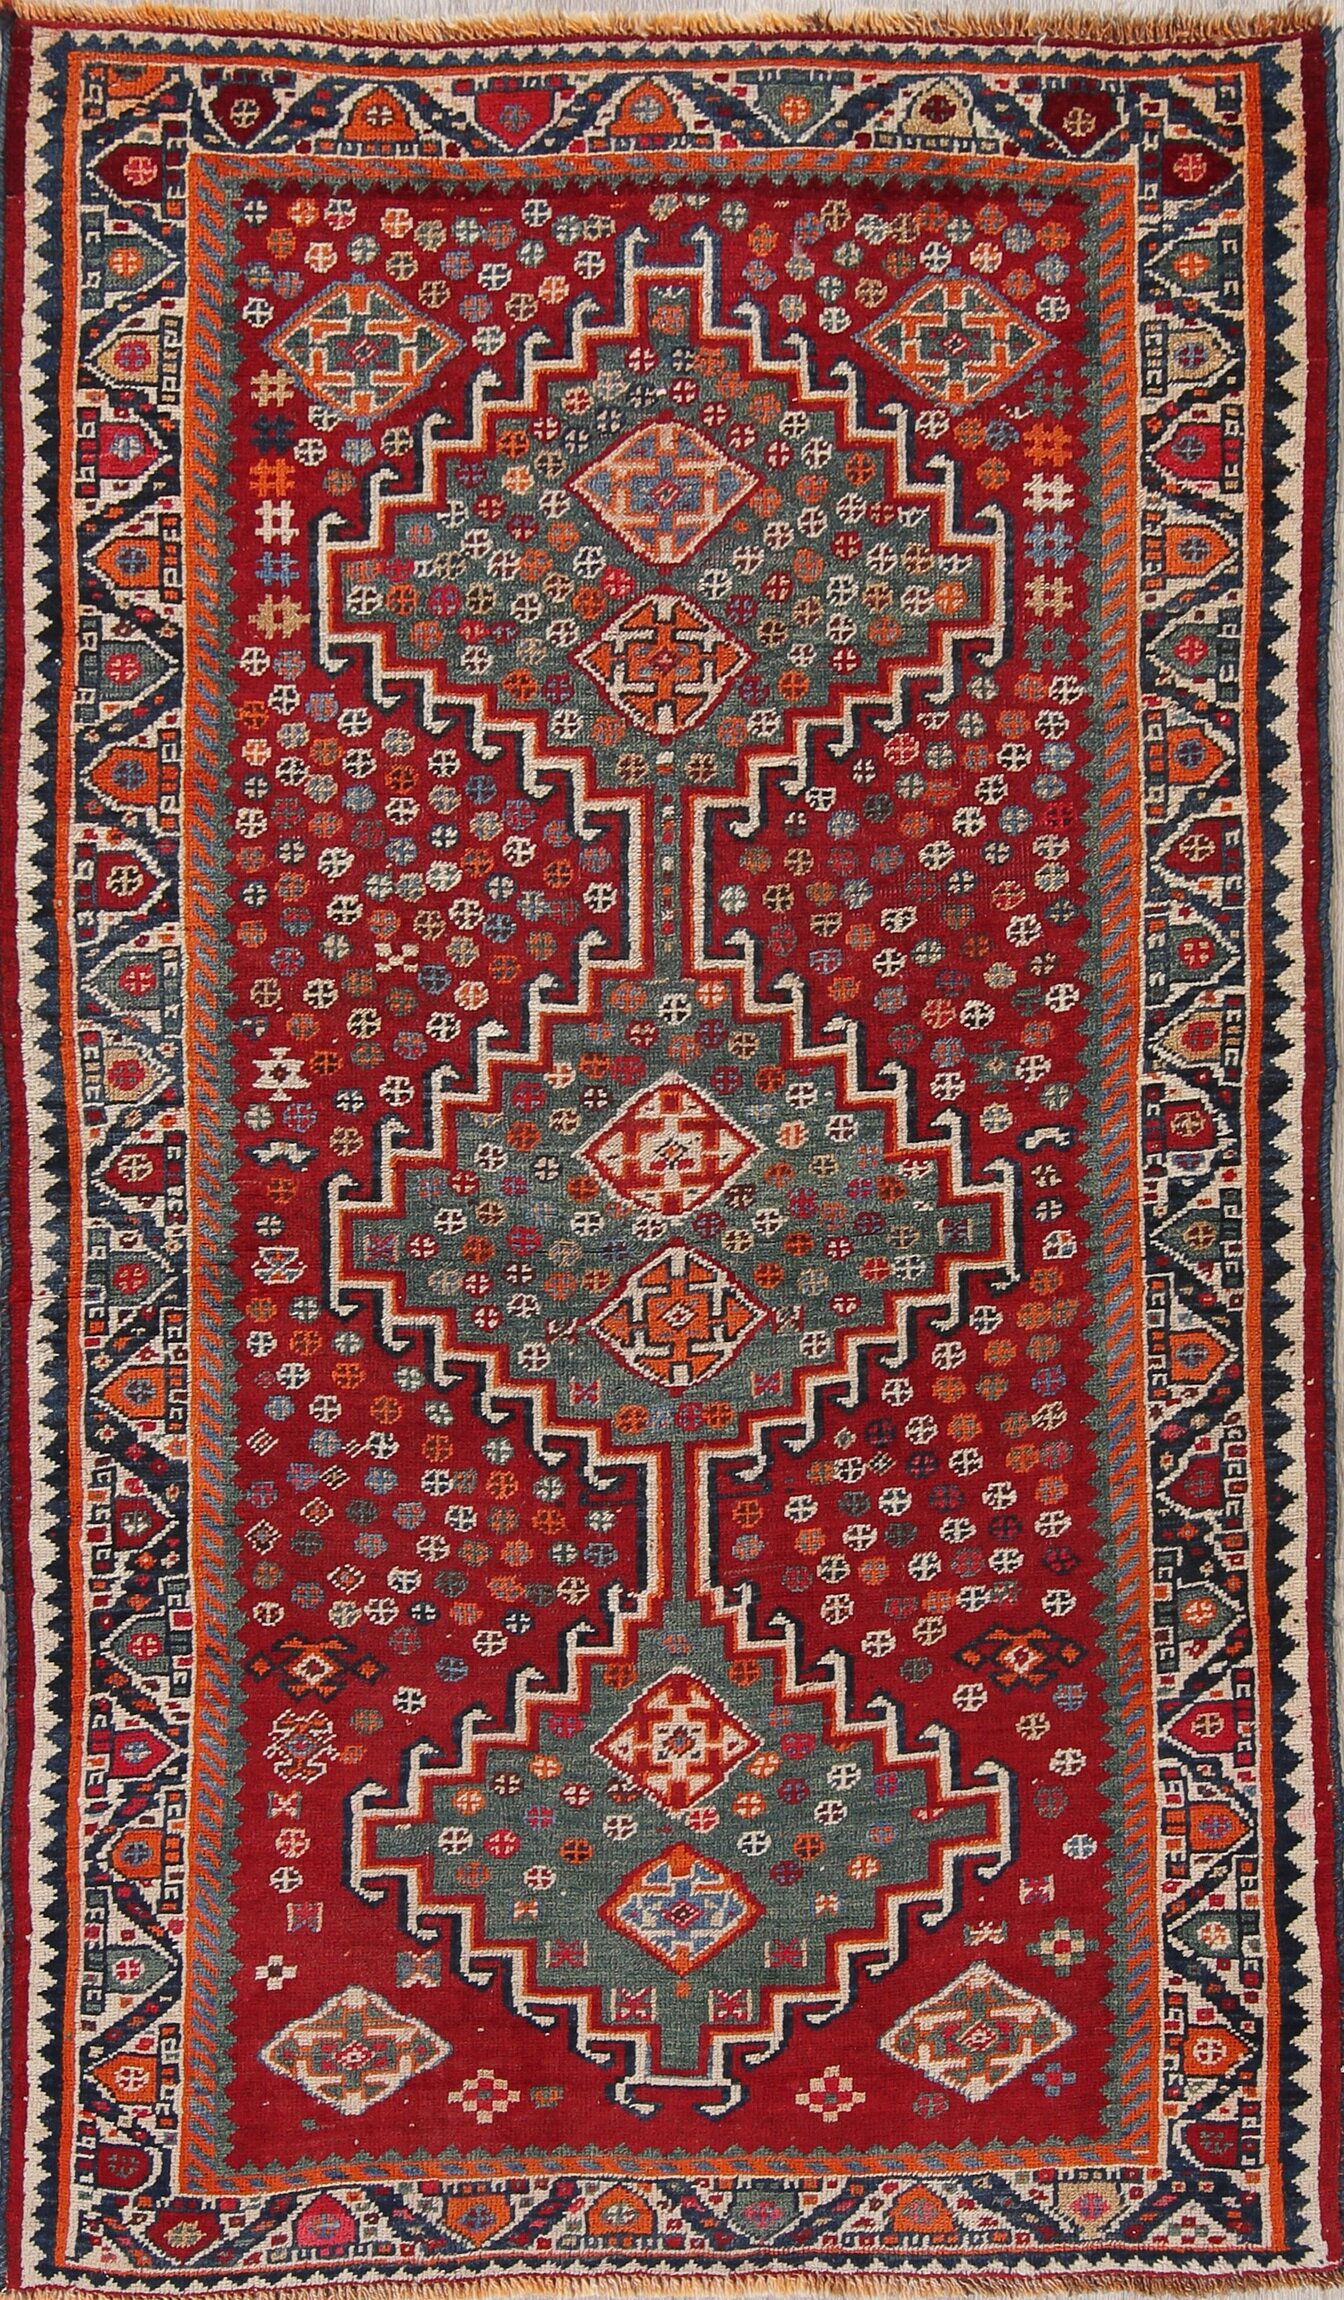 Geometric Tribal Red And Teal Green Antique Persian Rug One Of A Kind Wool 7 0 X4 0